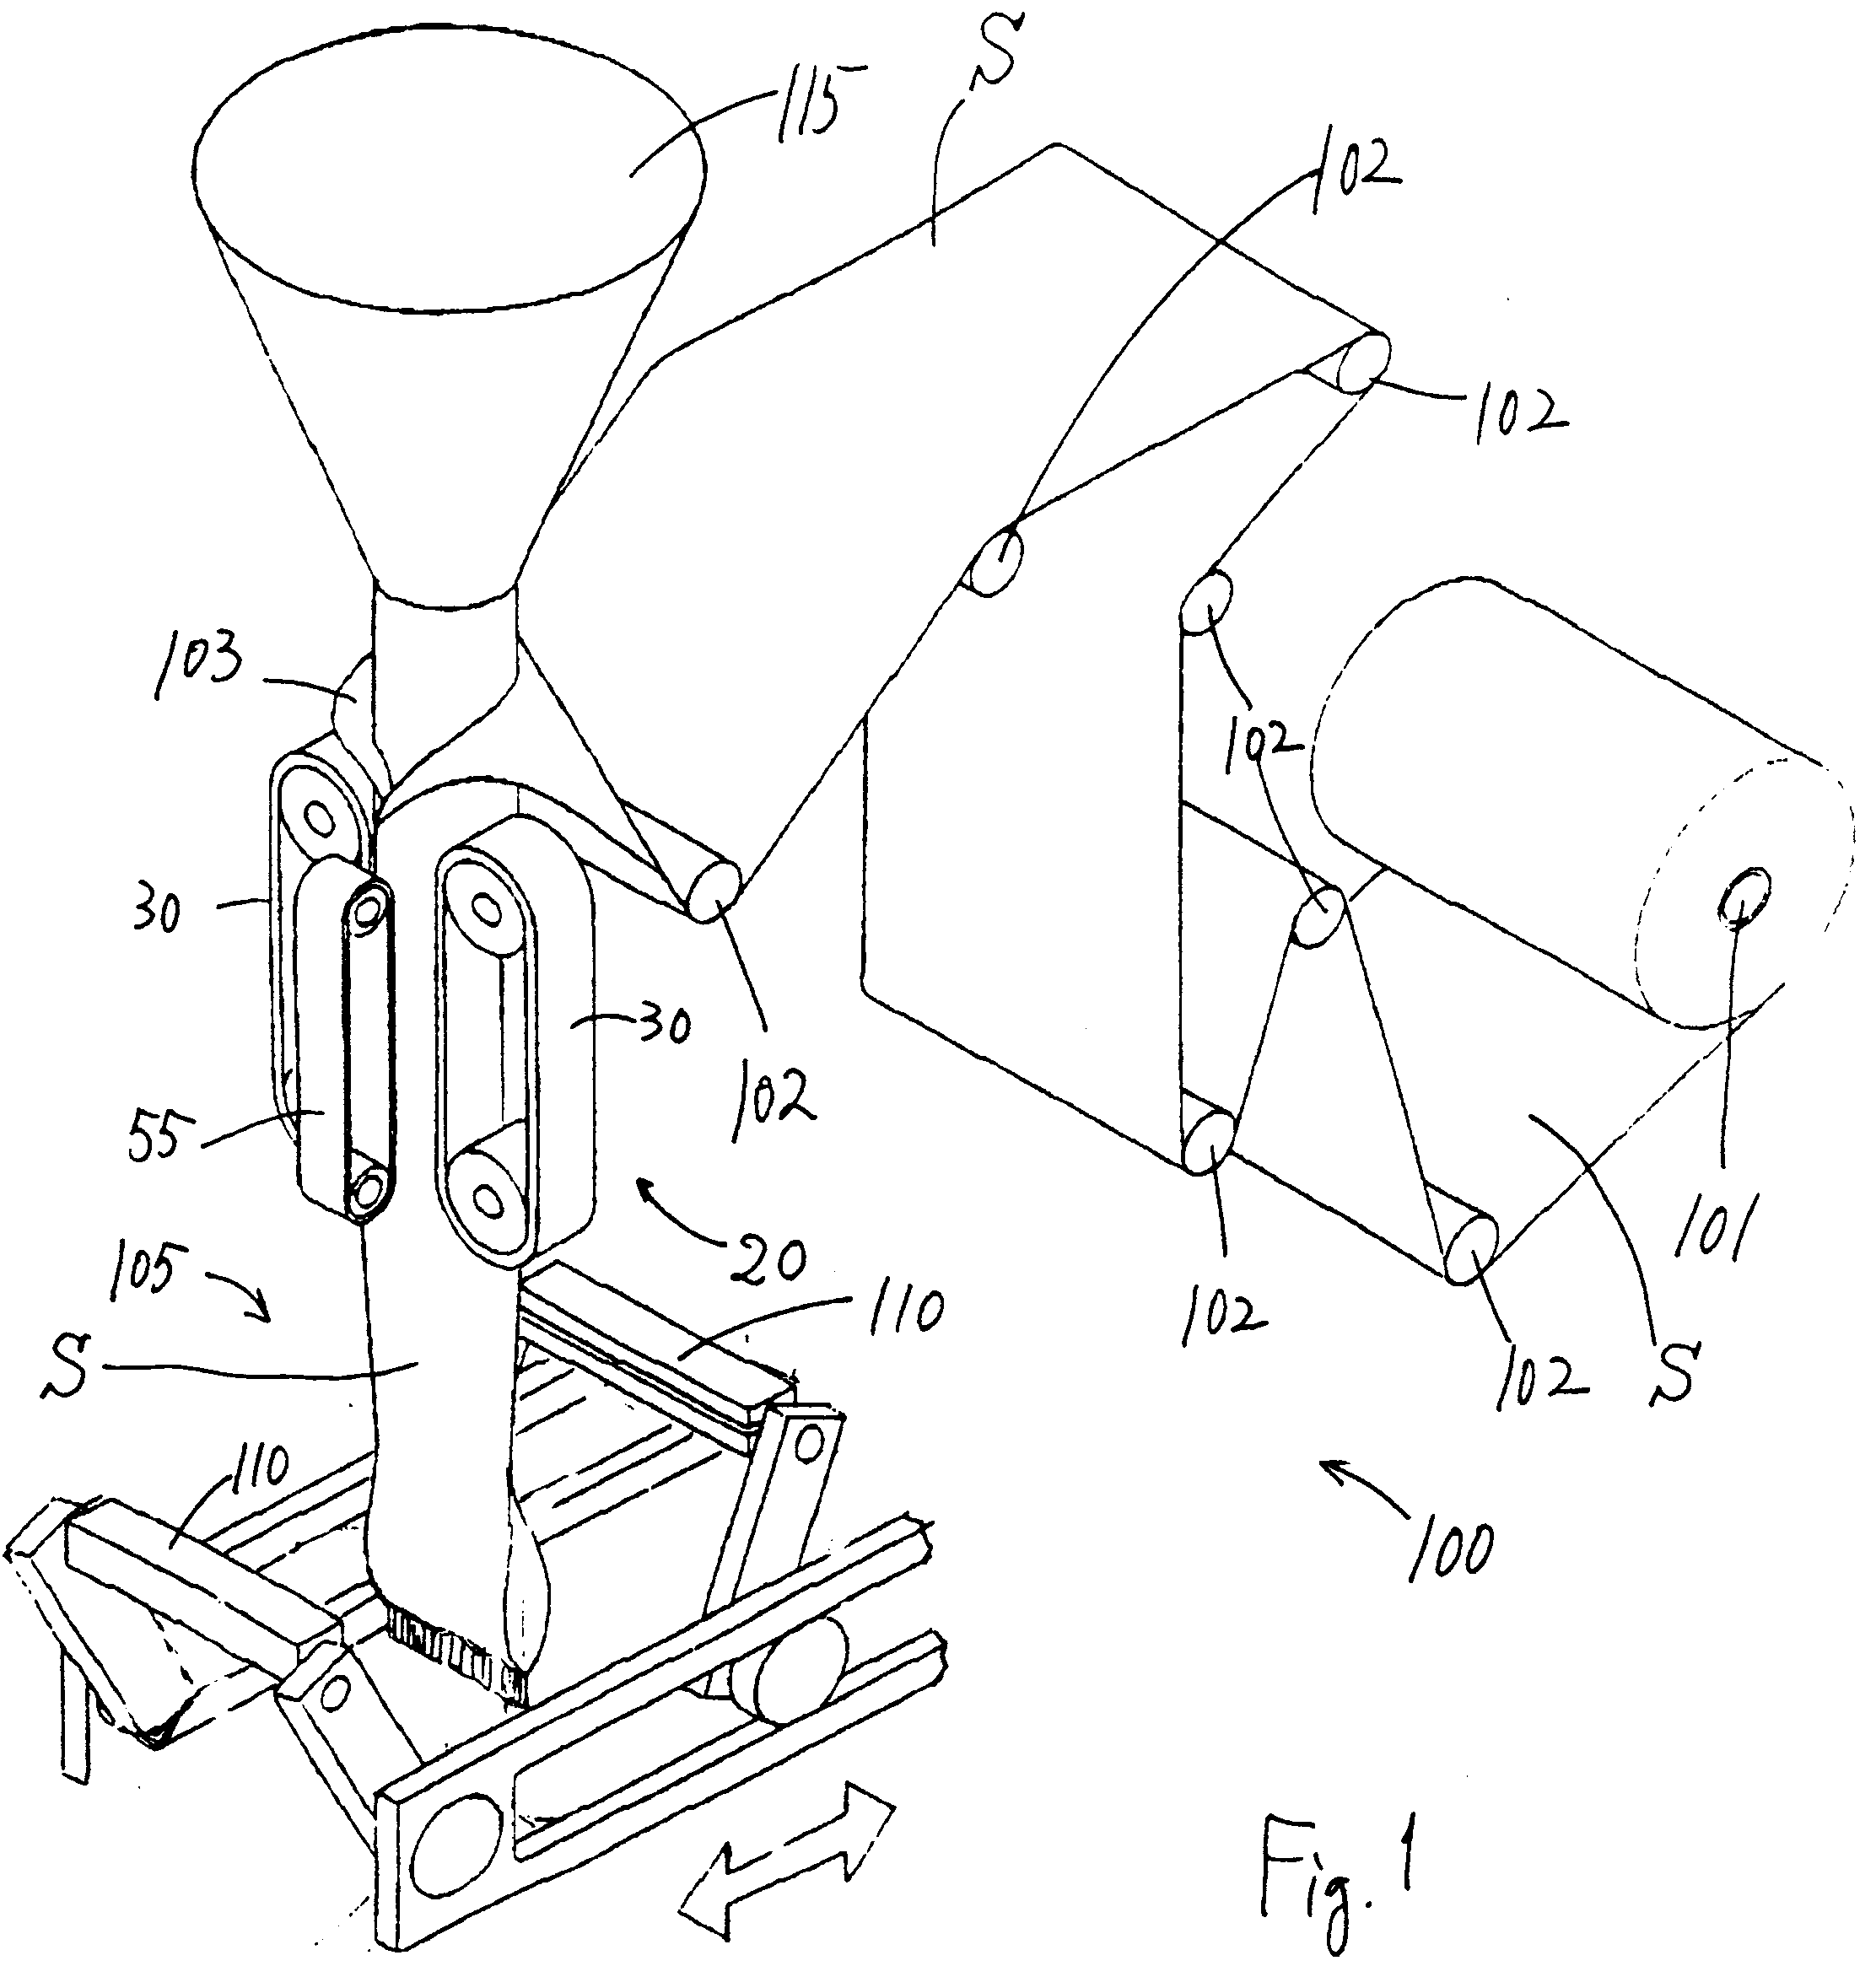 patent ep0469818a2 - film pulling apparatus for a form-fill-seal packaging machine